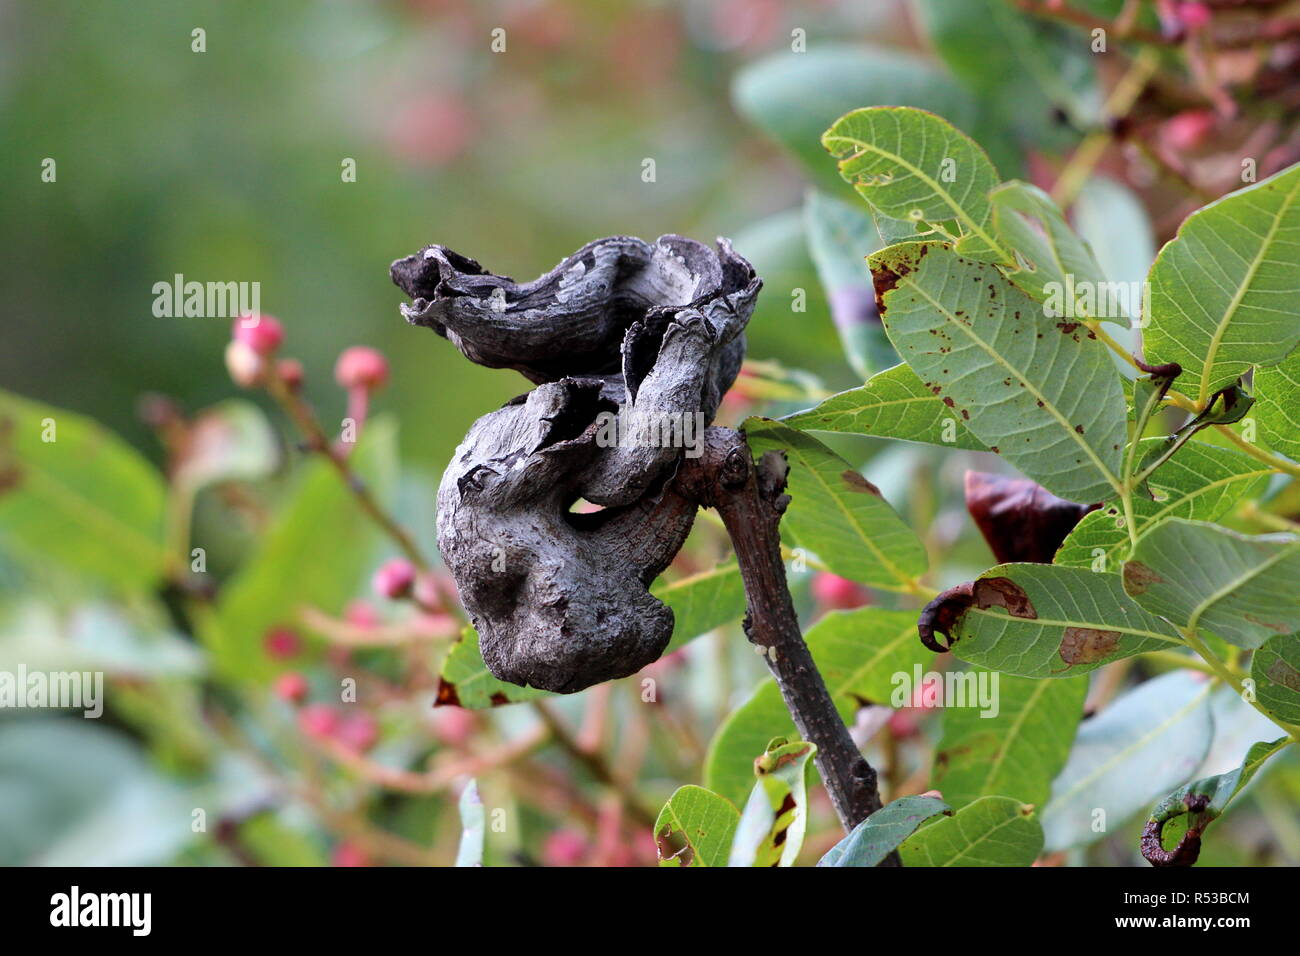 Tree branch with bark shaped like small dragon looking at sky surrounded with green leaves, flowers and other garden vegetation on warm sunny day - Stock Image